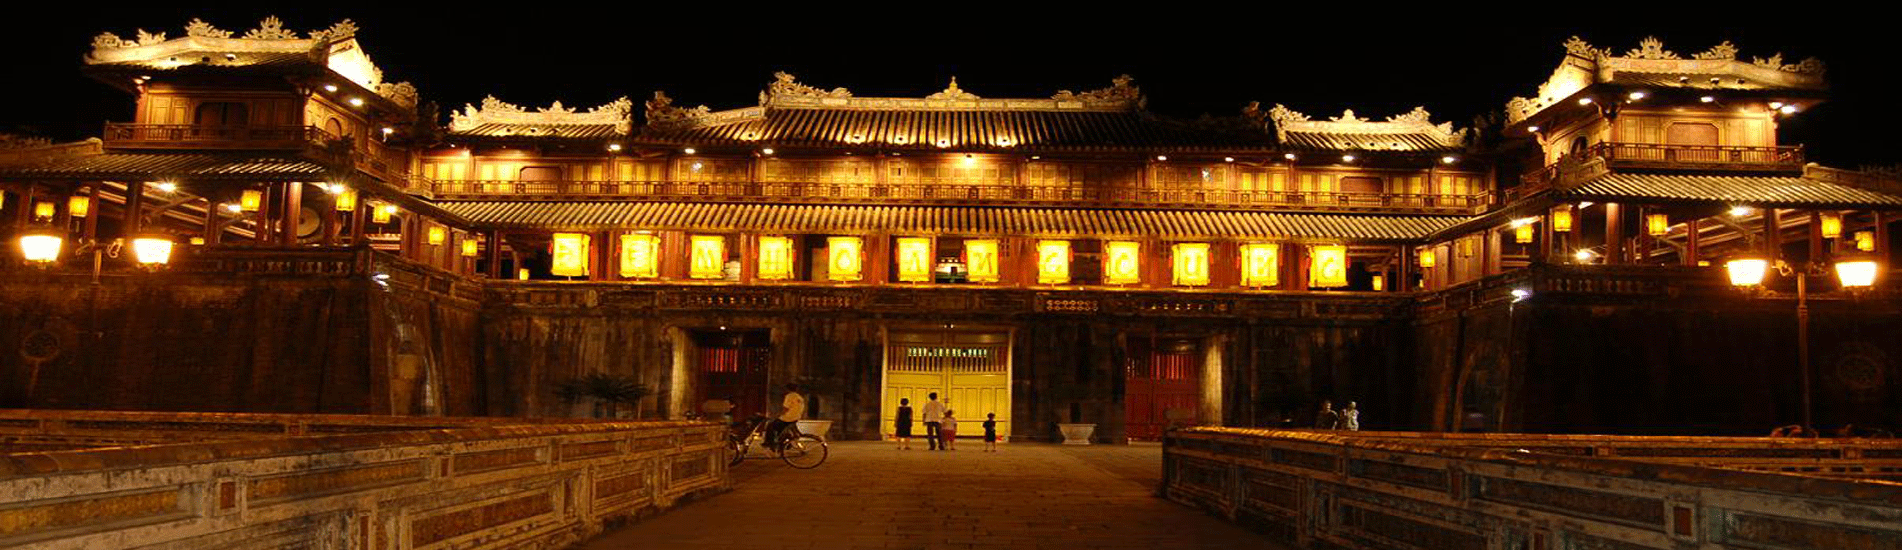 Noon Gate in Hue Forbidden City – World Cultural Heritage